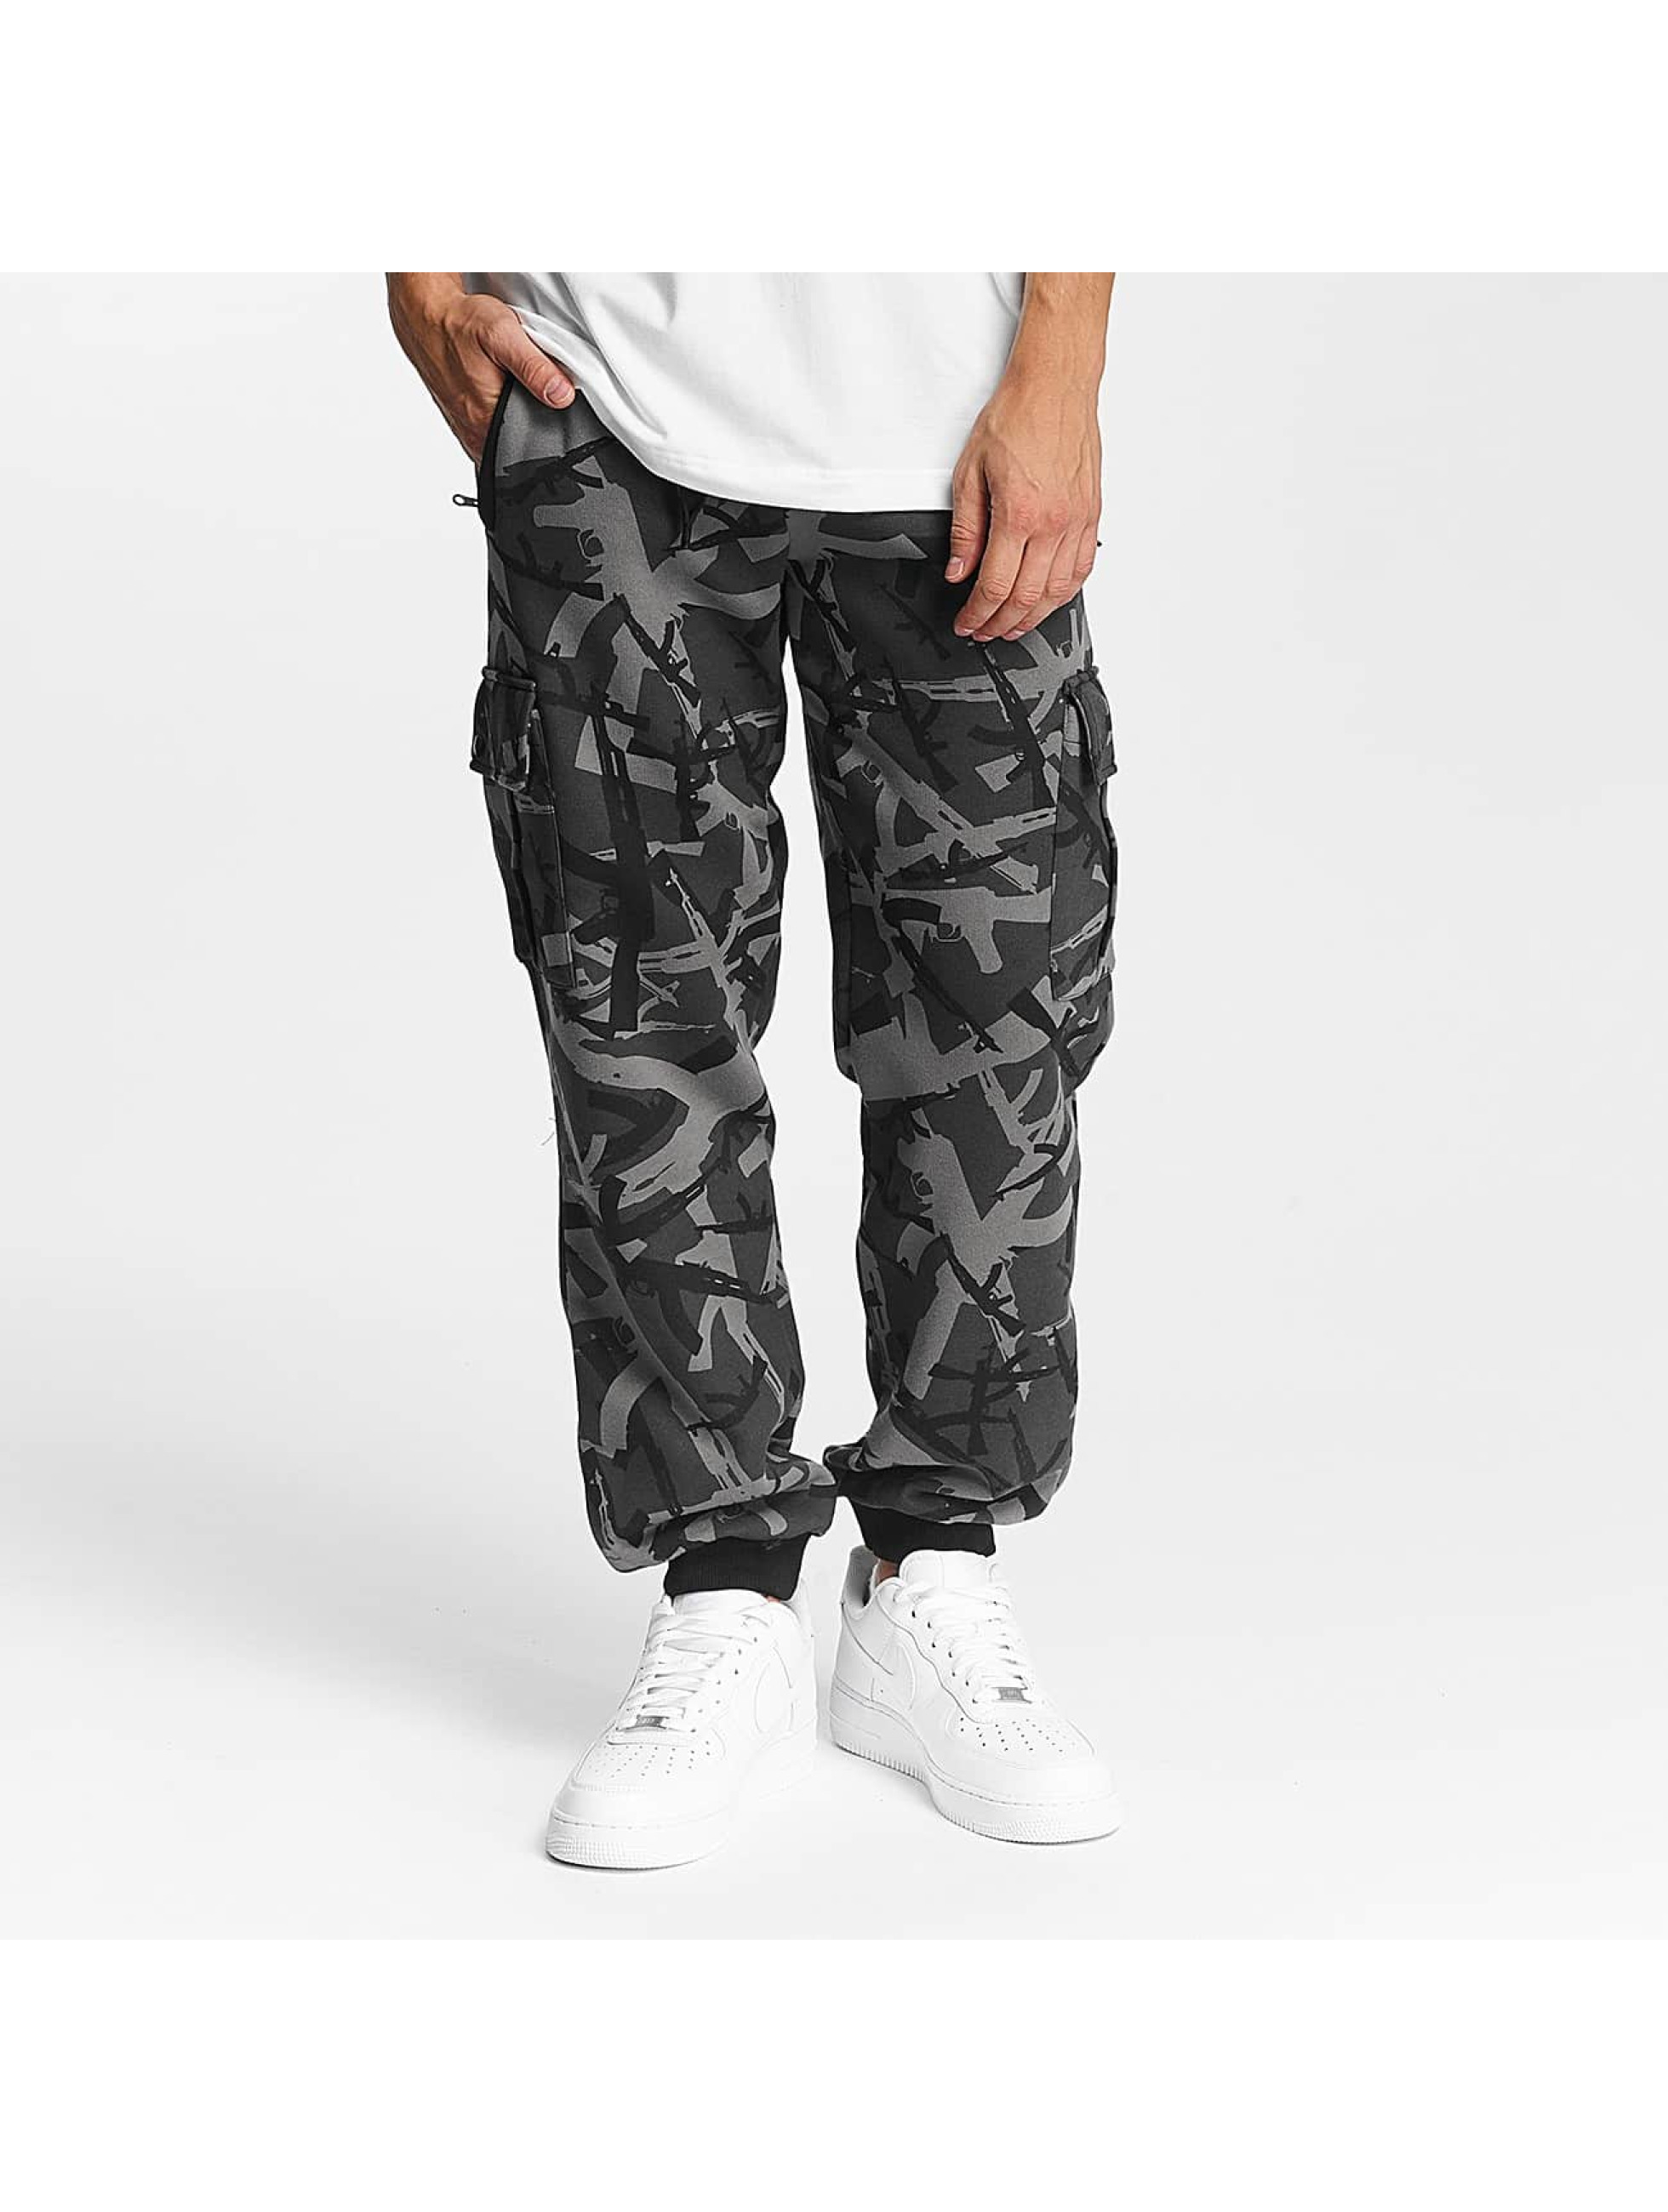 Pusher Apparel Joggingbukser AK Camo camouflage